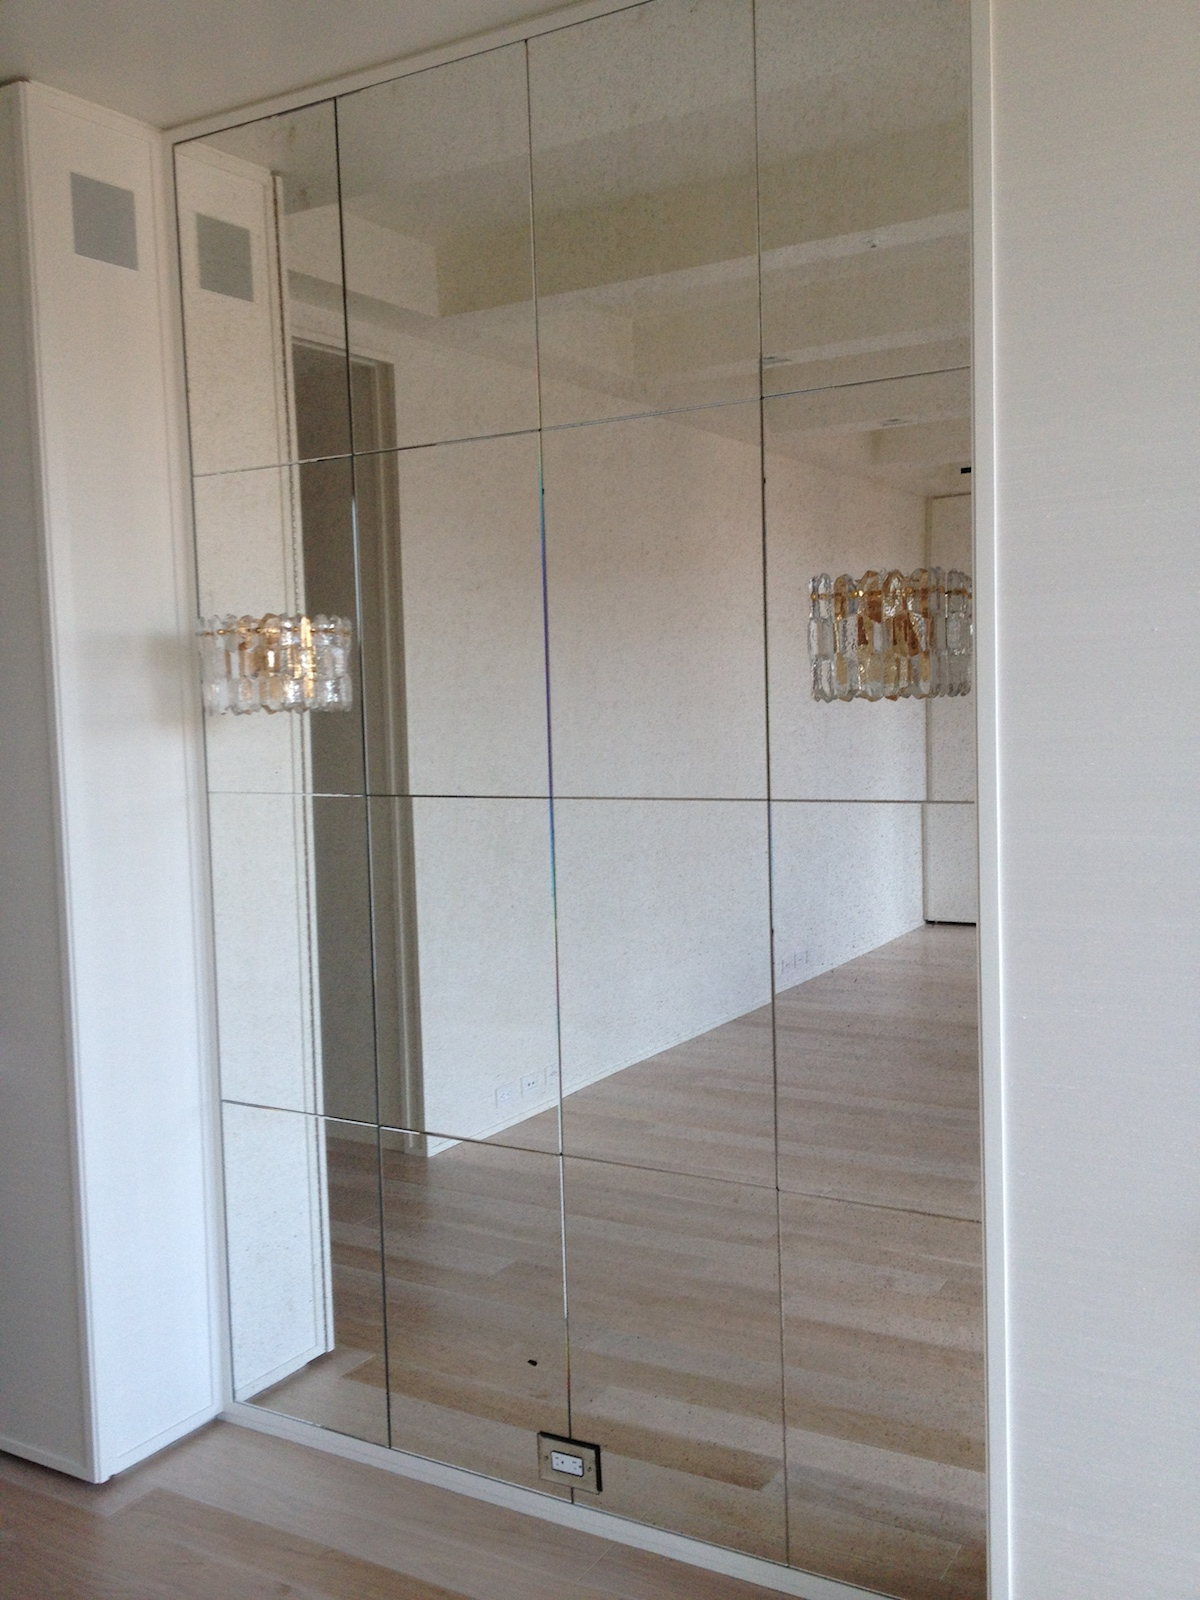 Most Recent Glass Wall Mirrors With Regard To Install Wall Mirrors Without Damaging Your Apartment Walls (View 11 of 20)